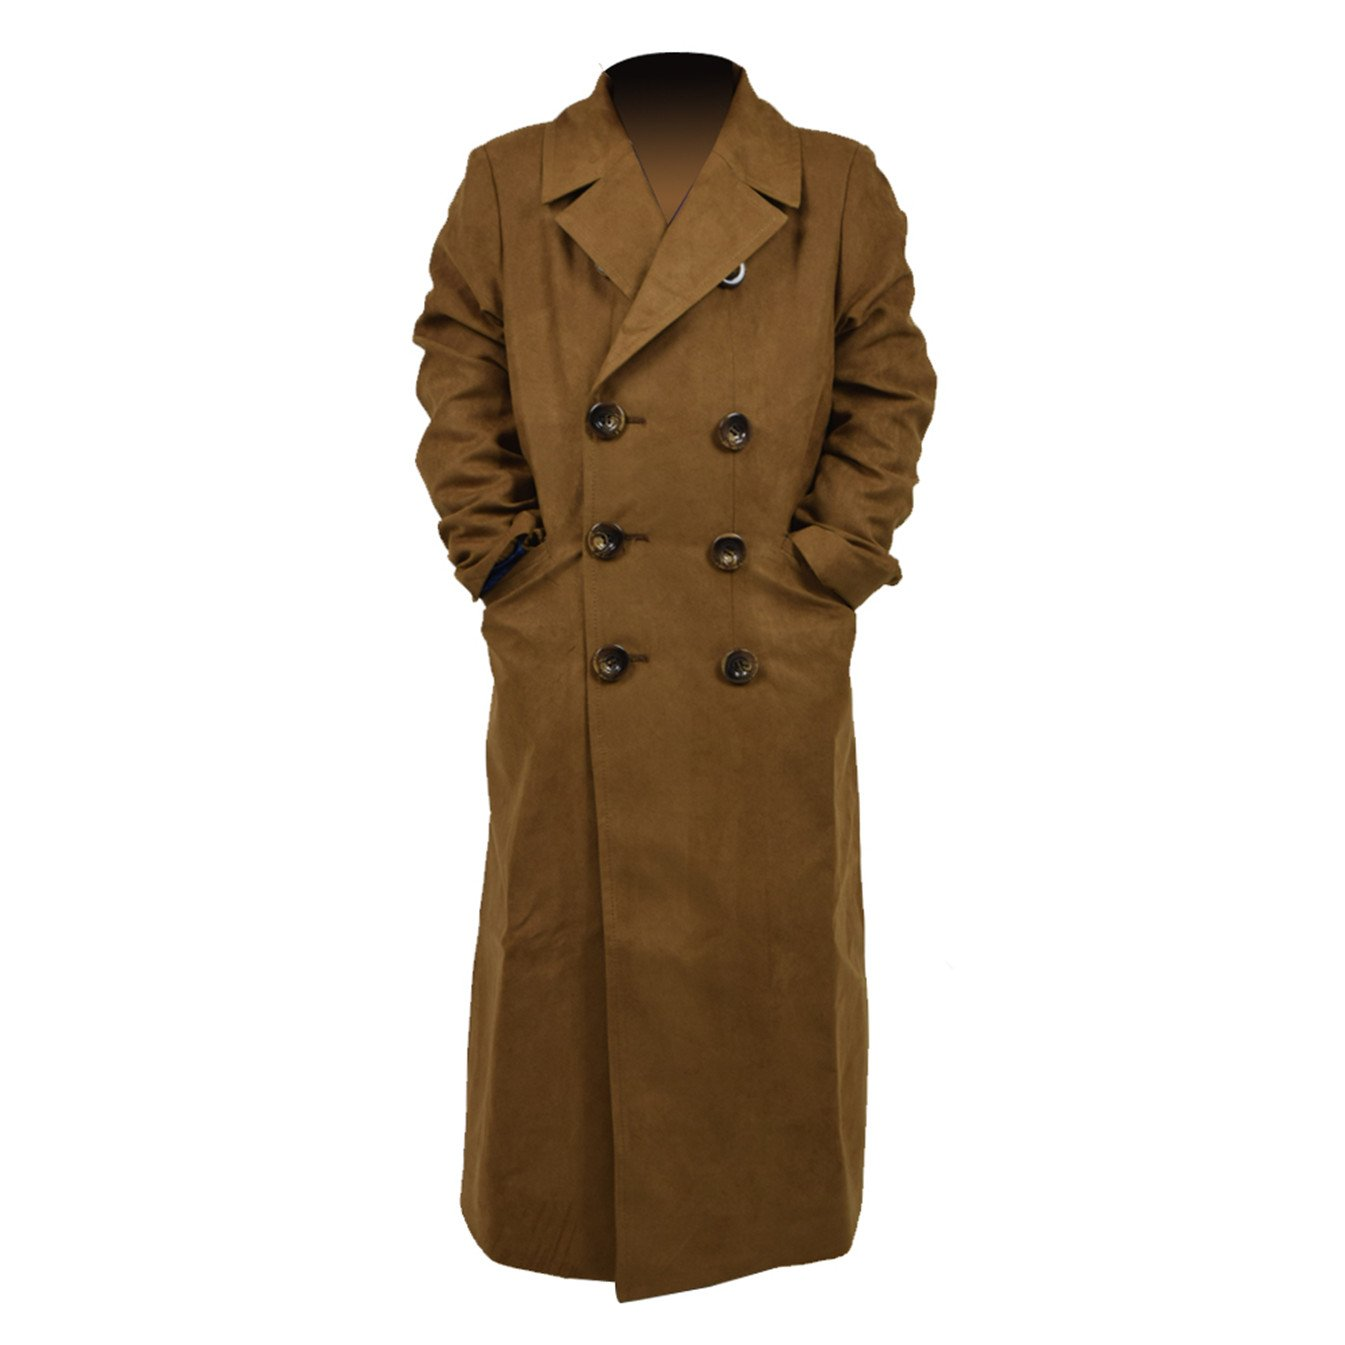 YANGGO Children's Party Halloween Outfit Cloak and Trench Coat Costume (Small, Brown Trench Coat)